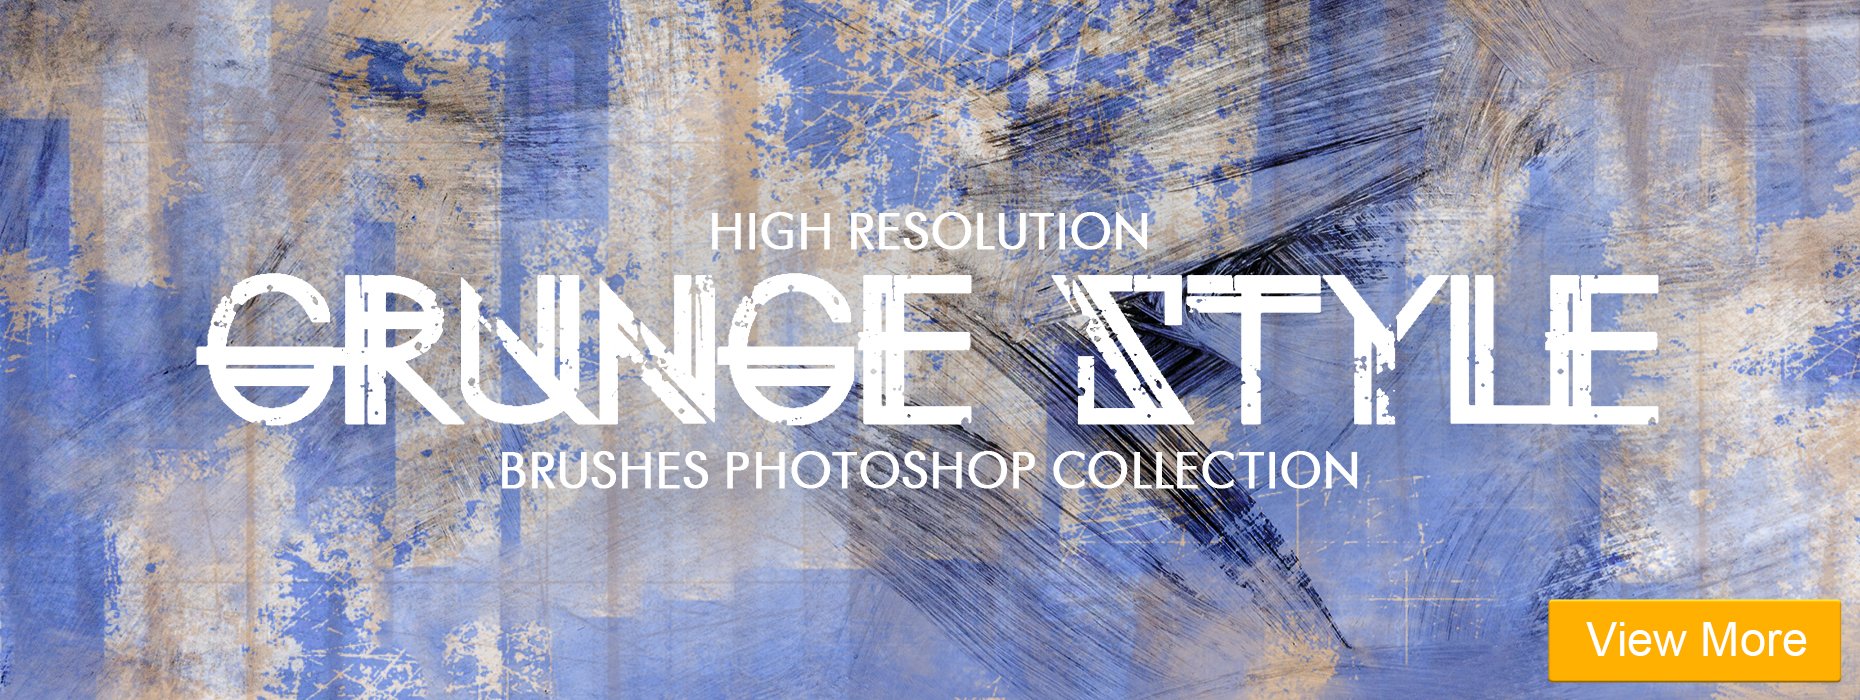 fog brushes photoshop free grunge style brushes banner